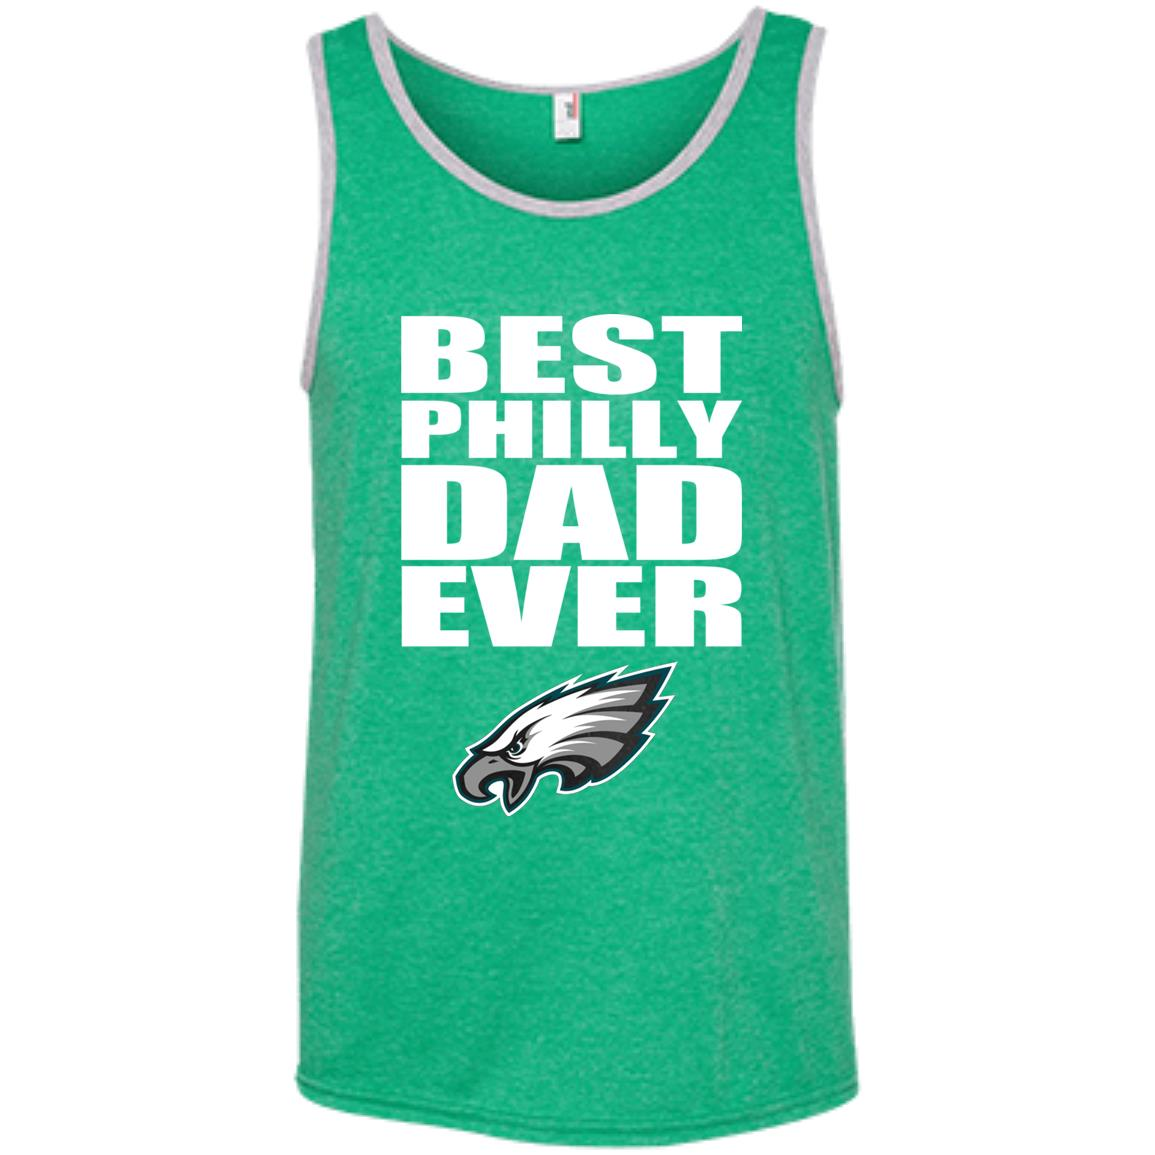 separation shoes e4a62 6ed85 Best Philly Dad Ever Philadelphia Eagles Father's Day Gift Tank Top